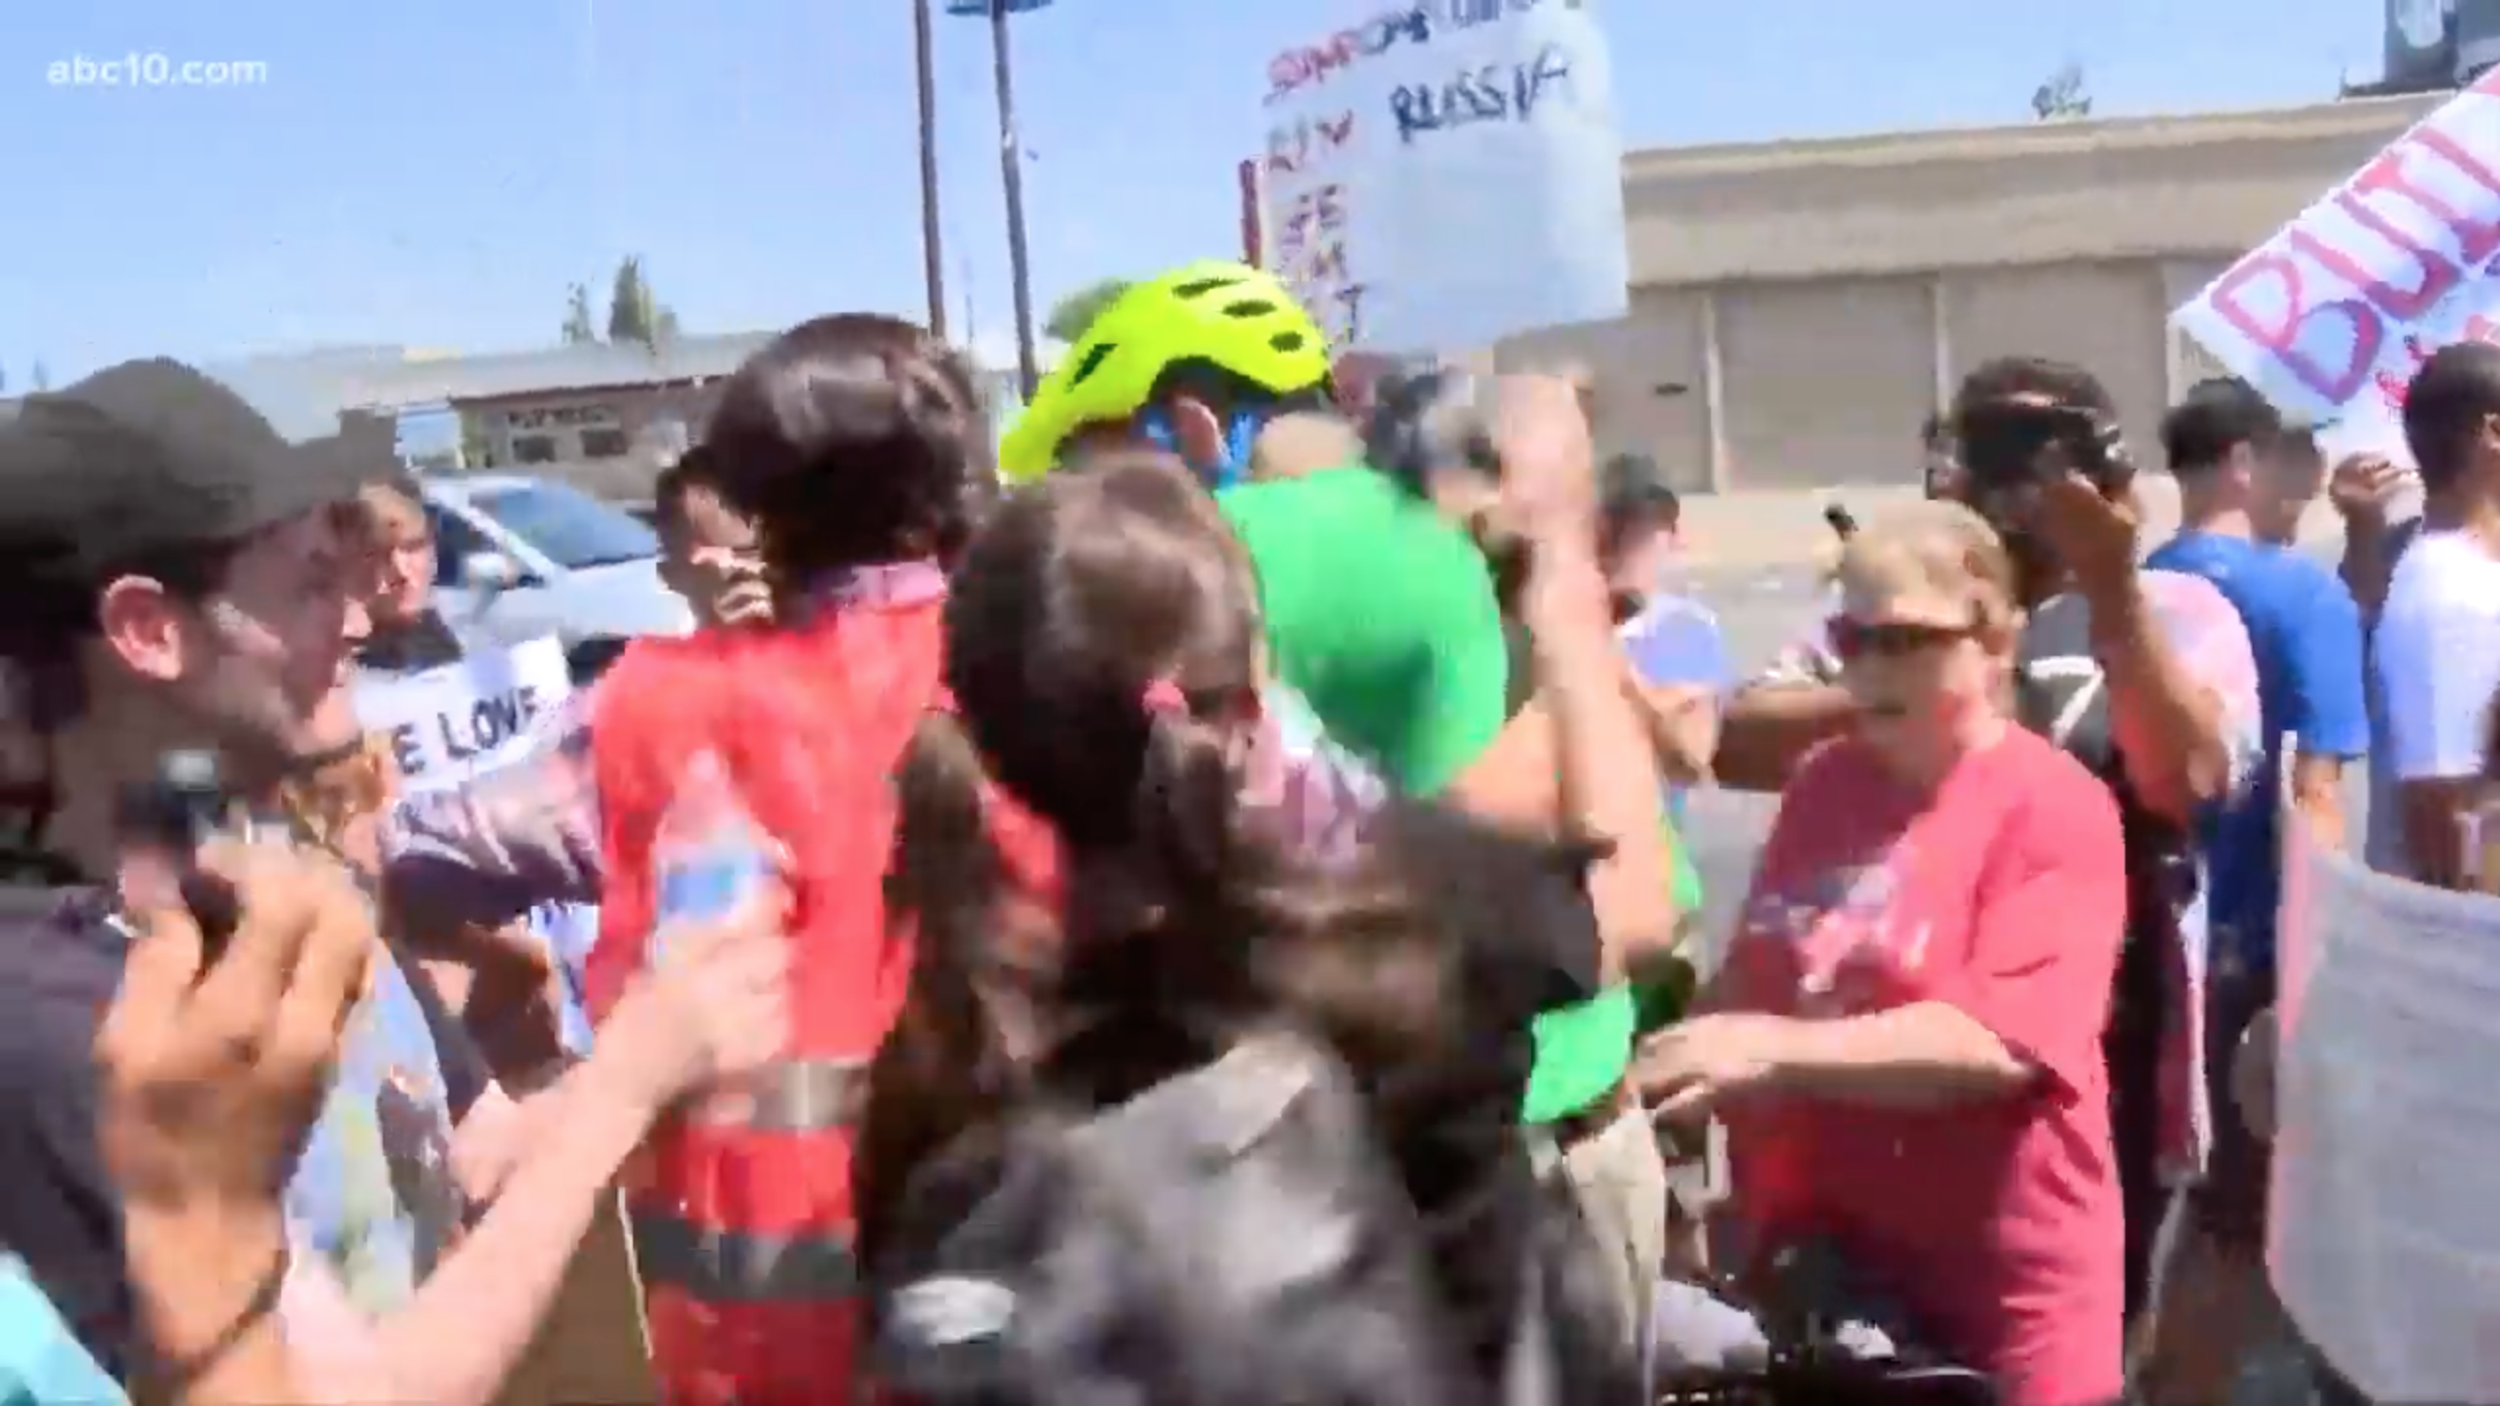 Far-left Antifa supporter and radical LGBTQ agitator who calls himself Sabine Tischler is  seen assaulting  an elderly man who was pushed off his bicycle by the violent leftists protesting Straight Pride, Modesto, CA.